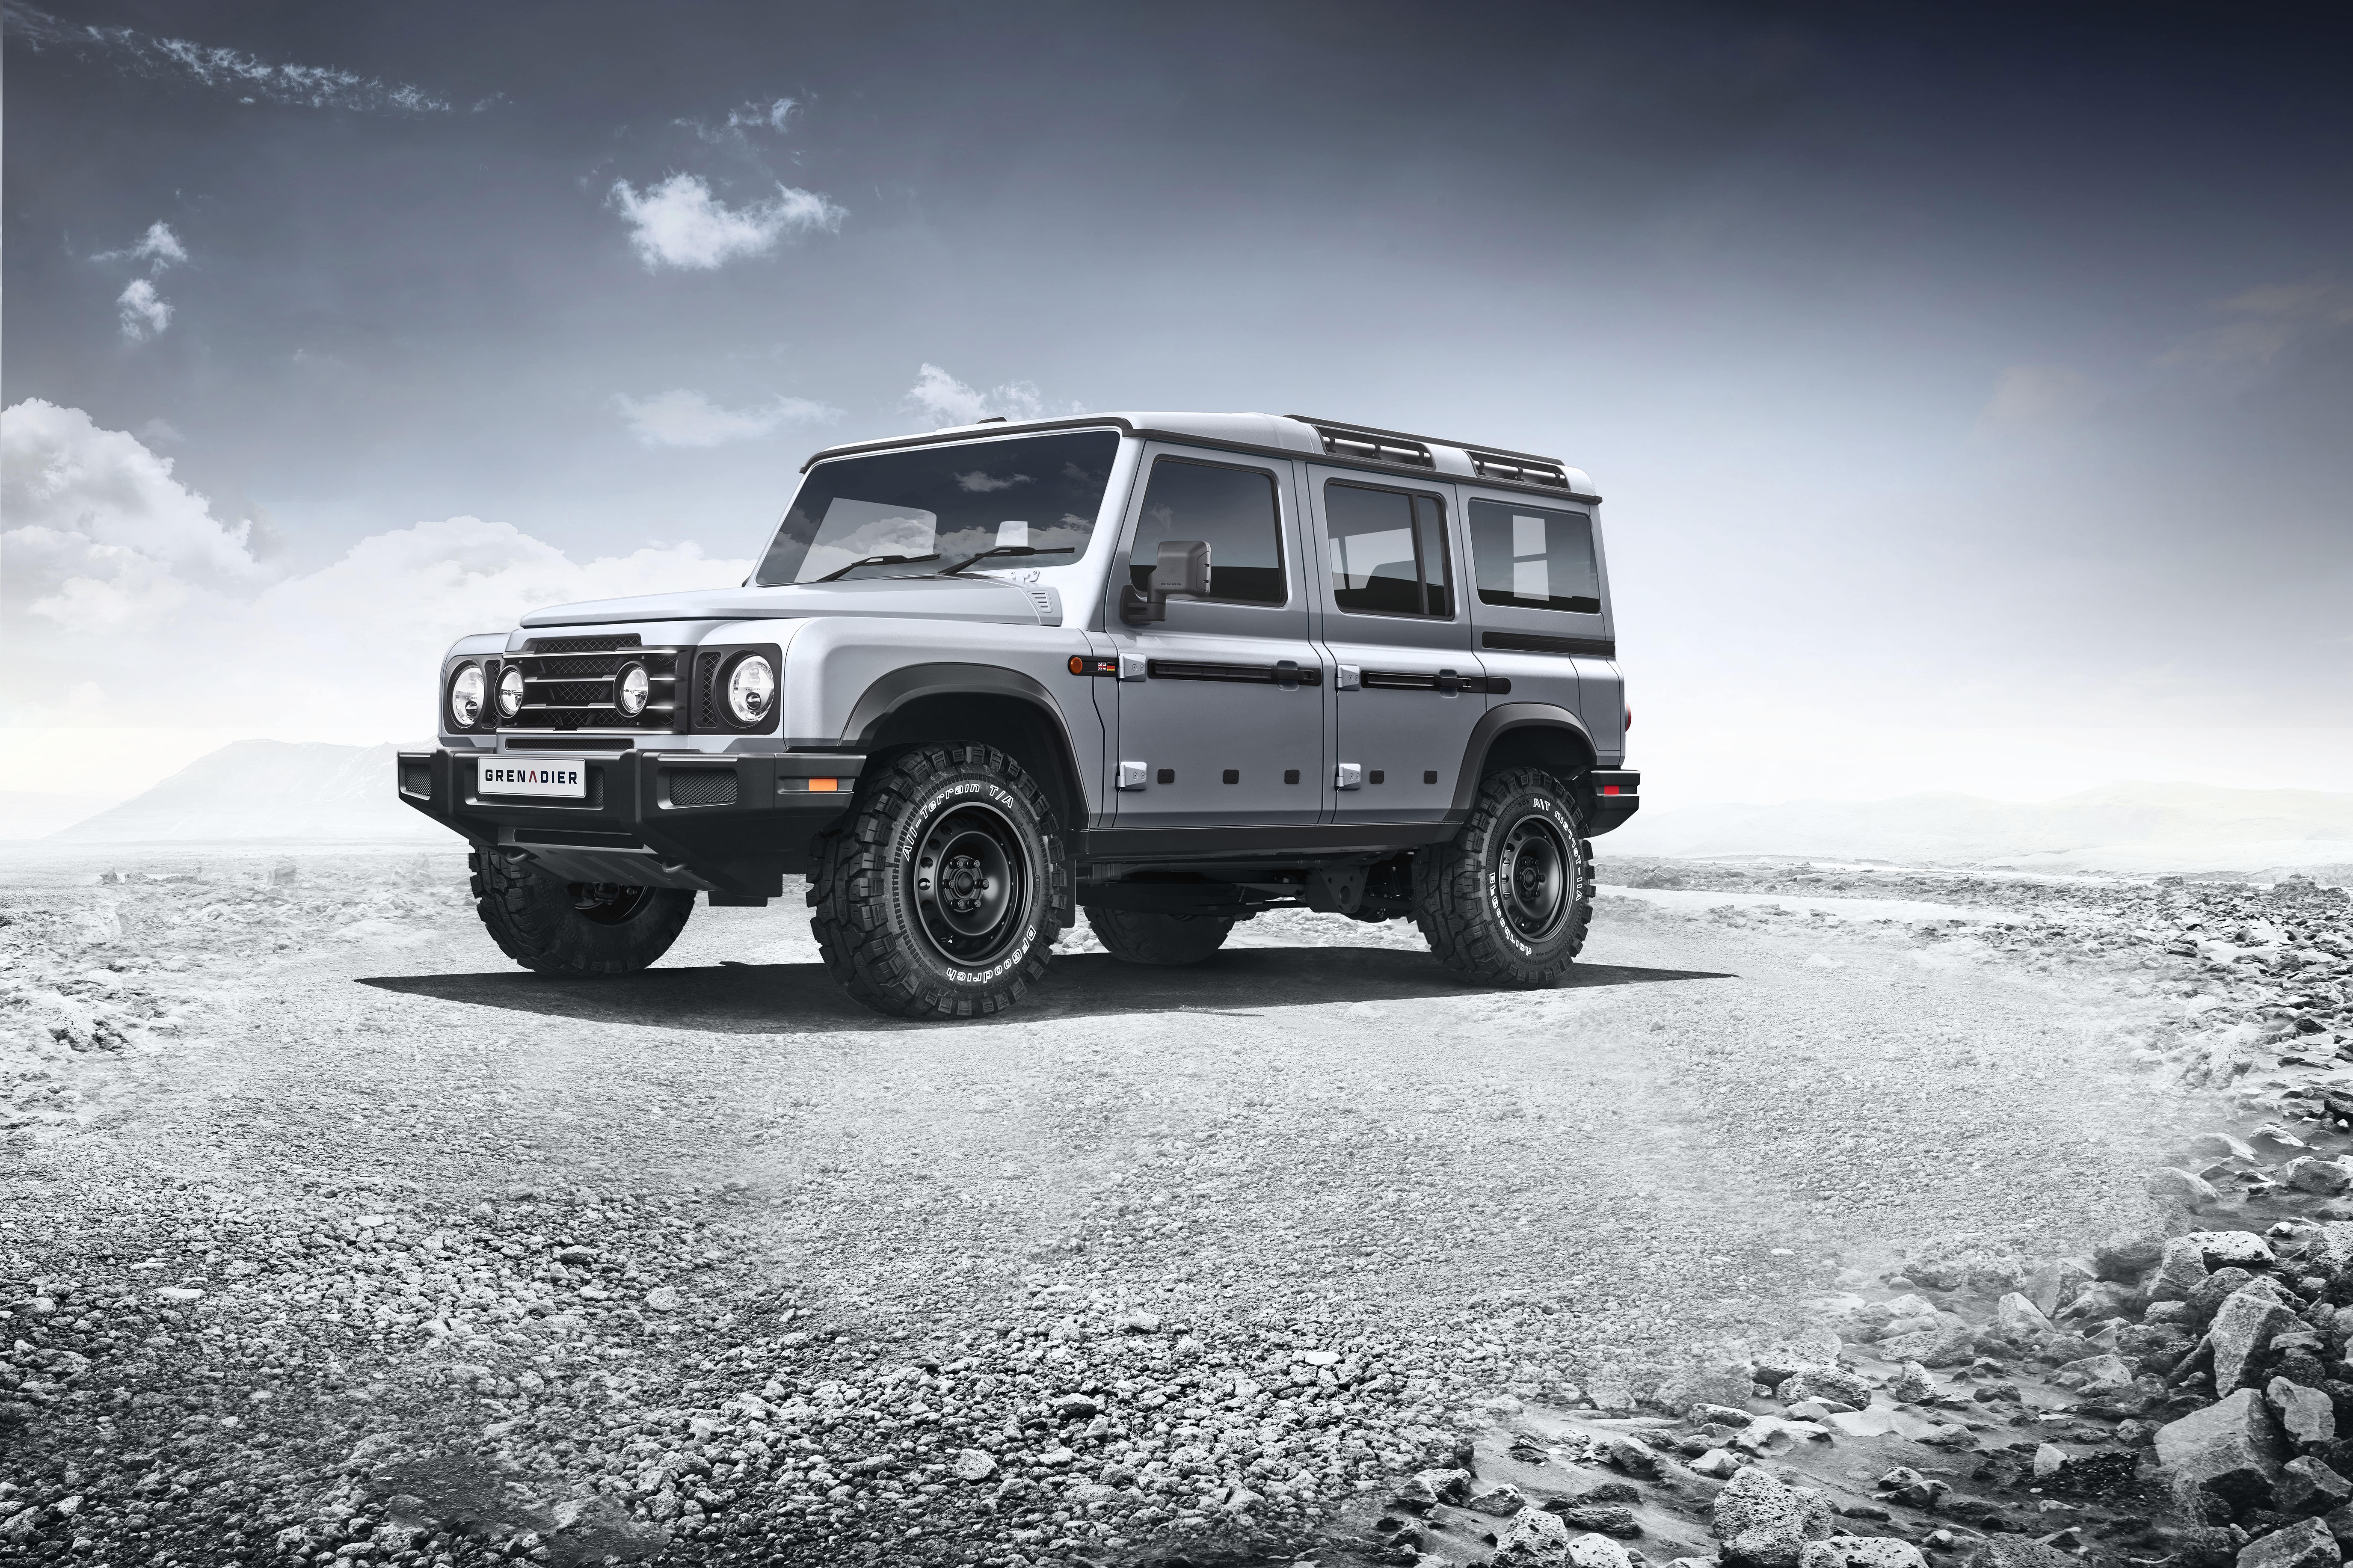 INEOS Grenadier Revealed: The 4×4 SUV We've Been Dreaming About